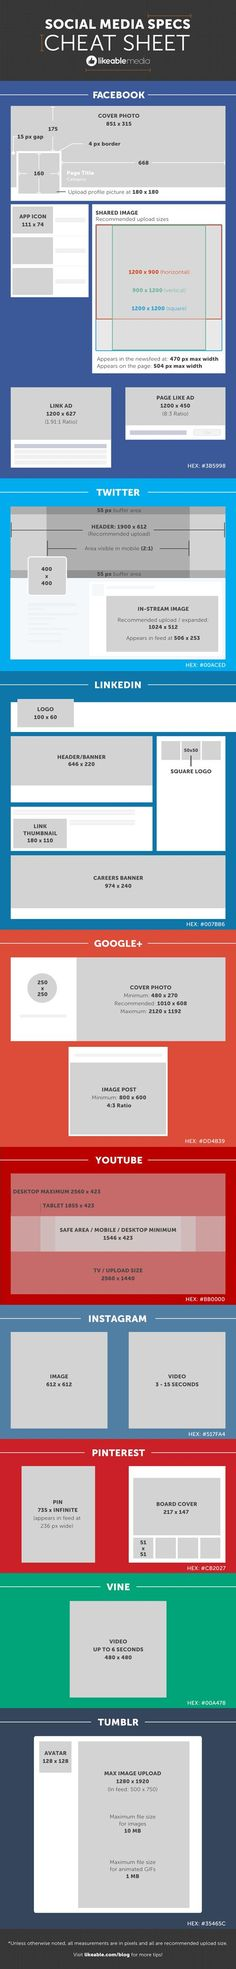 The ultimate social media image cheat sheet: what size should your #socialmedia images be? This handy guide is updated every time a social media platform changes. Pin it for future reference! #blogging